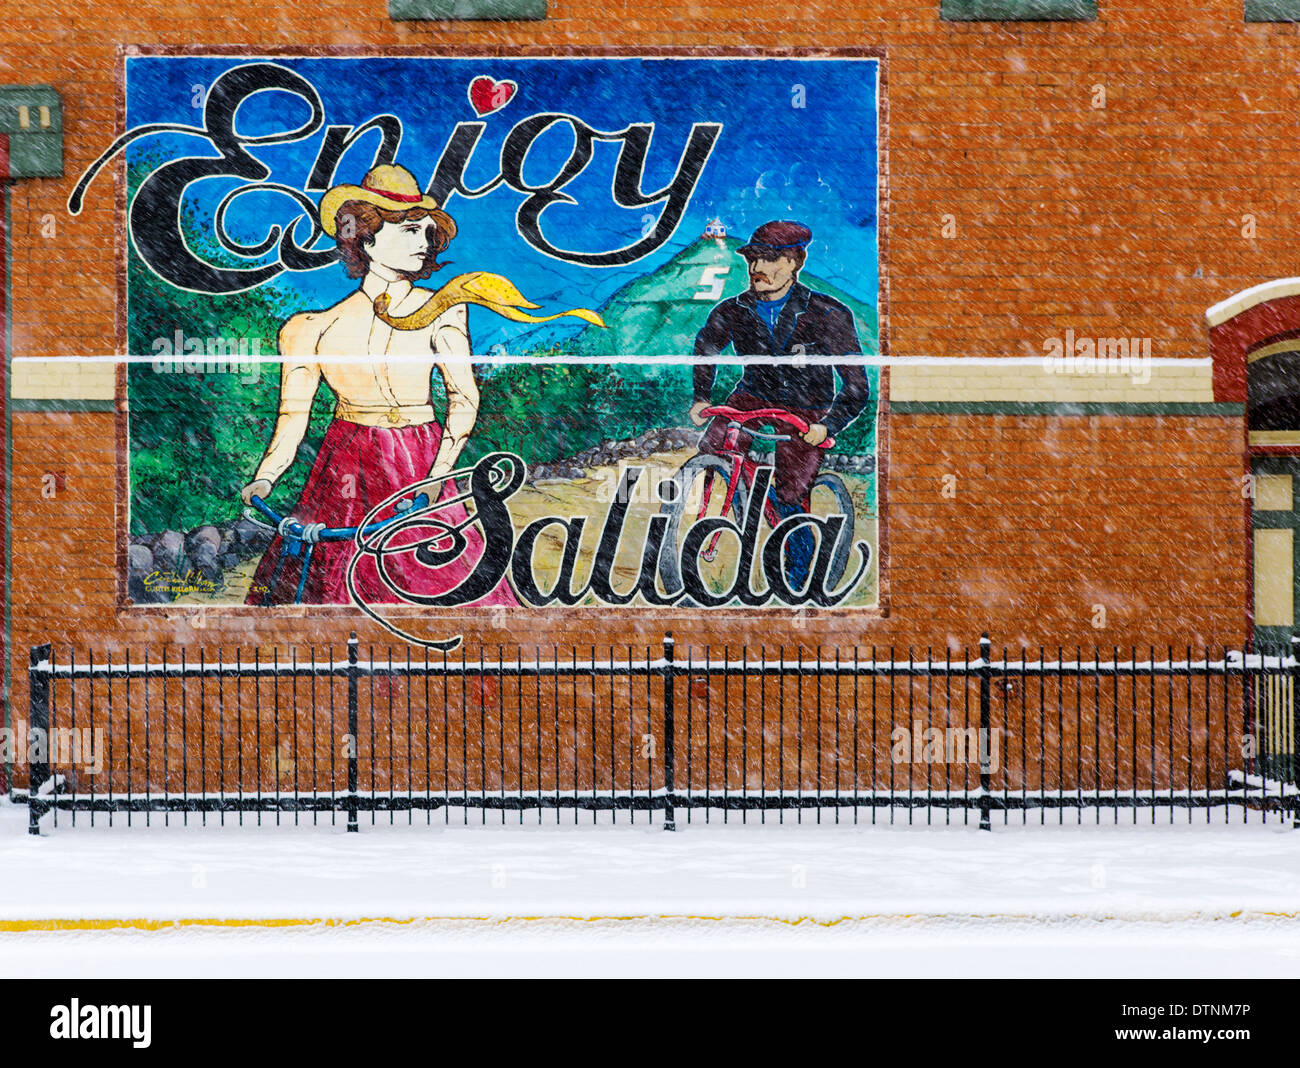 Snowy winter view of colorful mural in historic downtown Salida, Colorado, USA - Stock Image